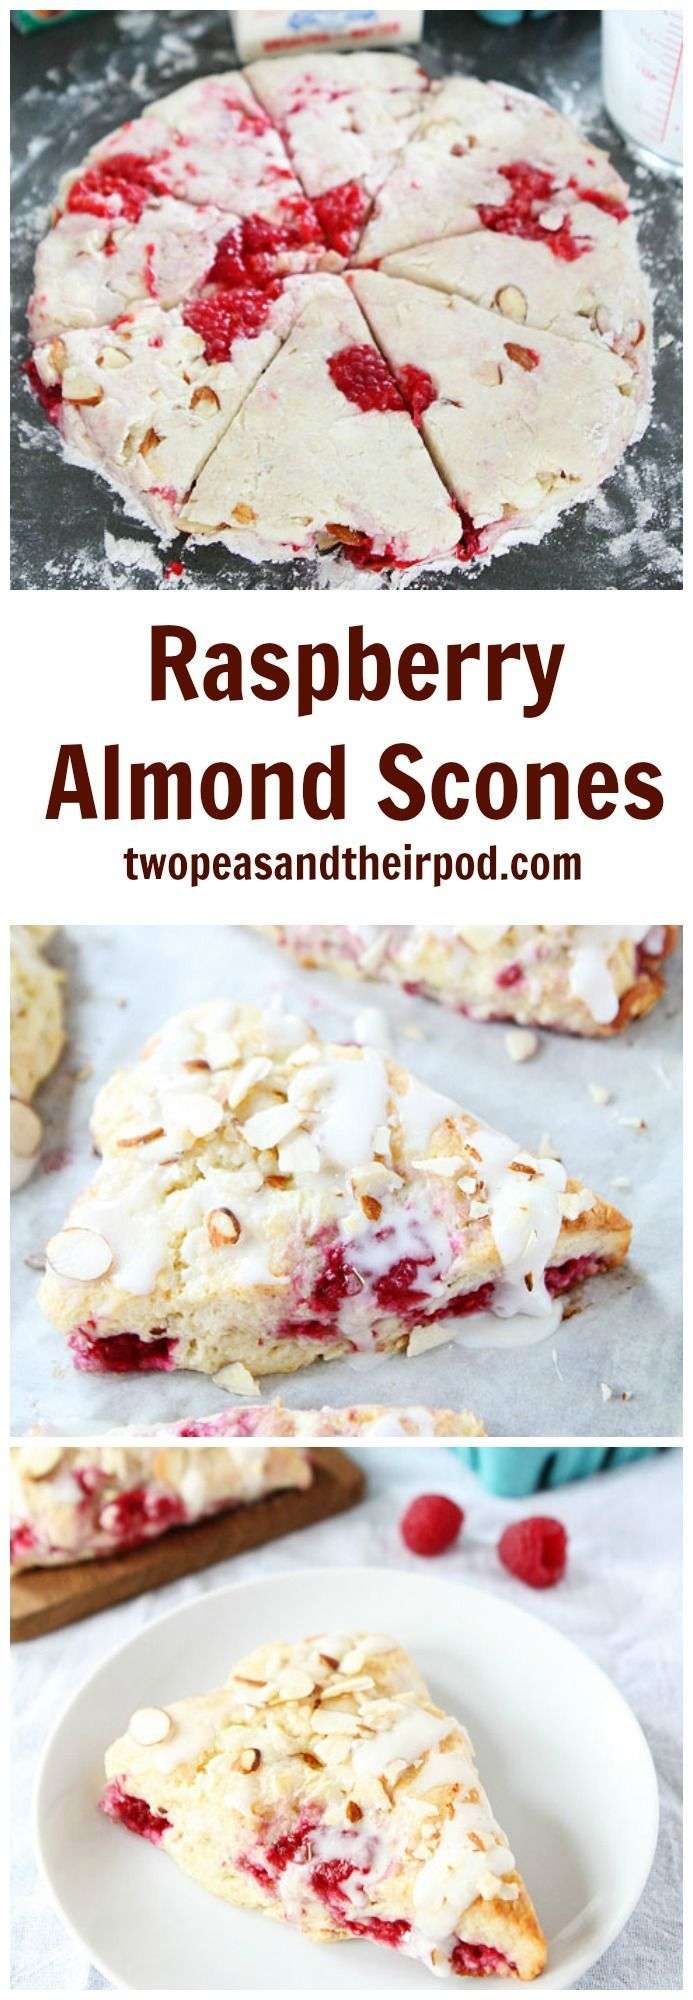 Raspberry Almond Scones Recipe on http://twopeasandtheirpod.com This is the BEST scone recipe! The scones are great for breakfast, brunch, or anytime!